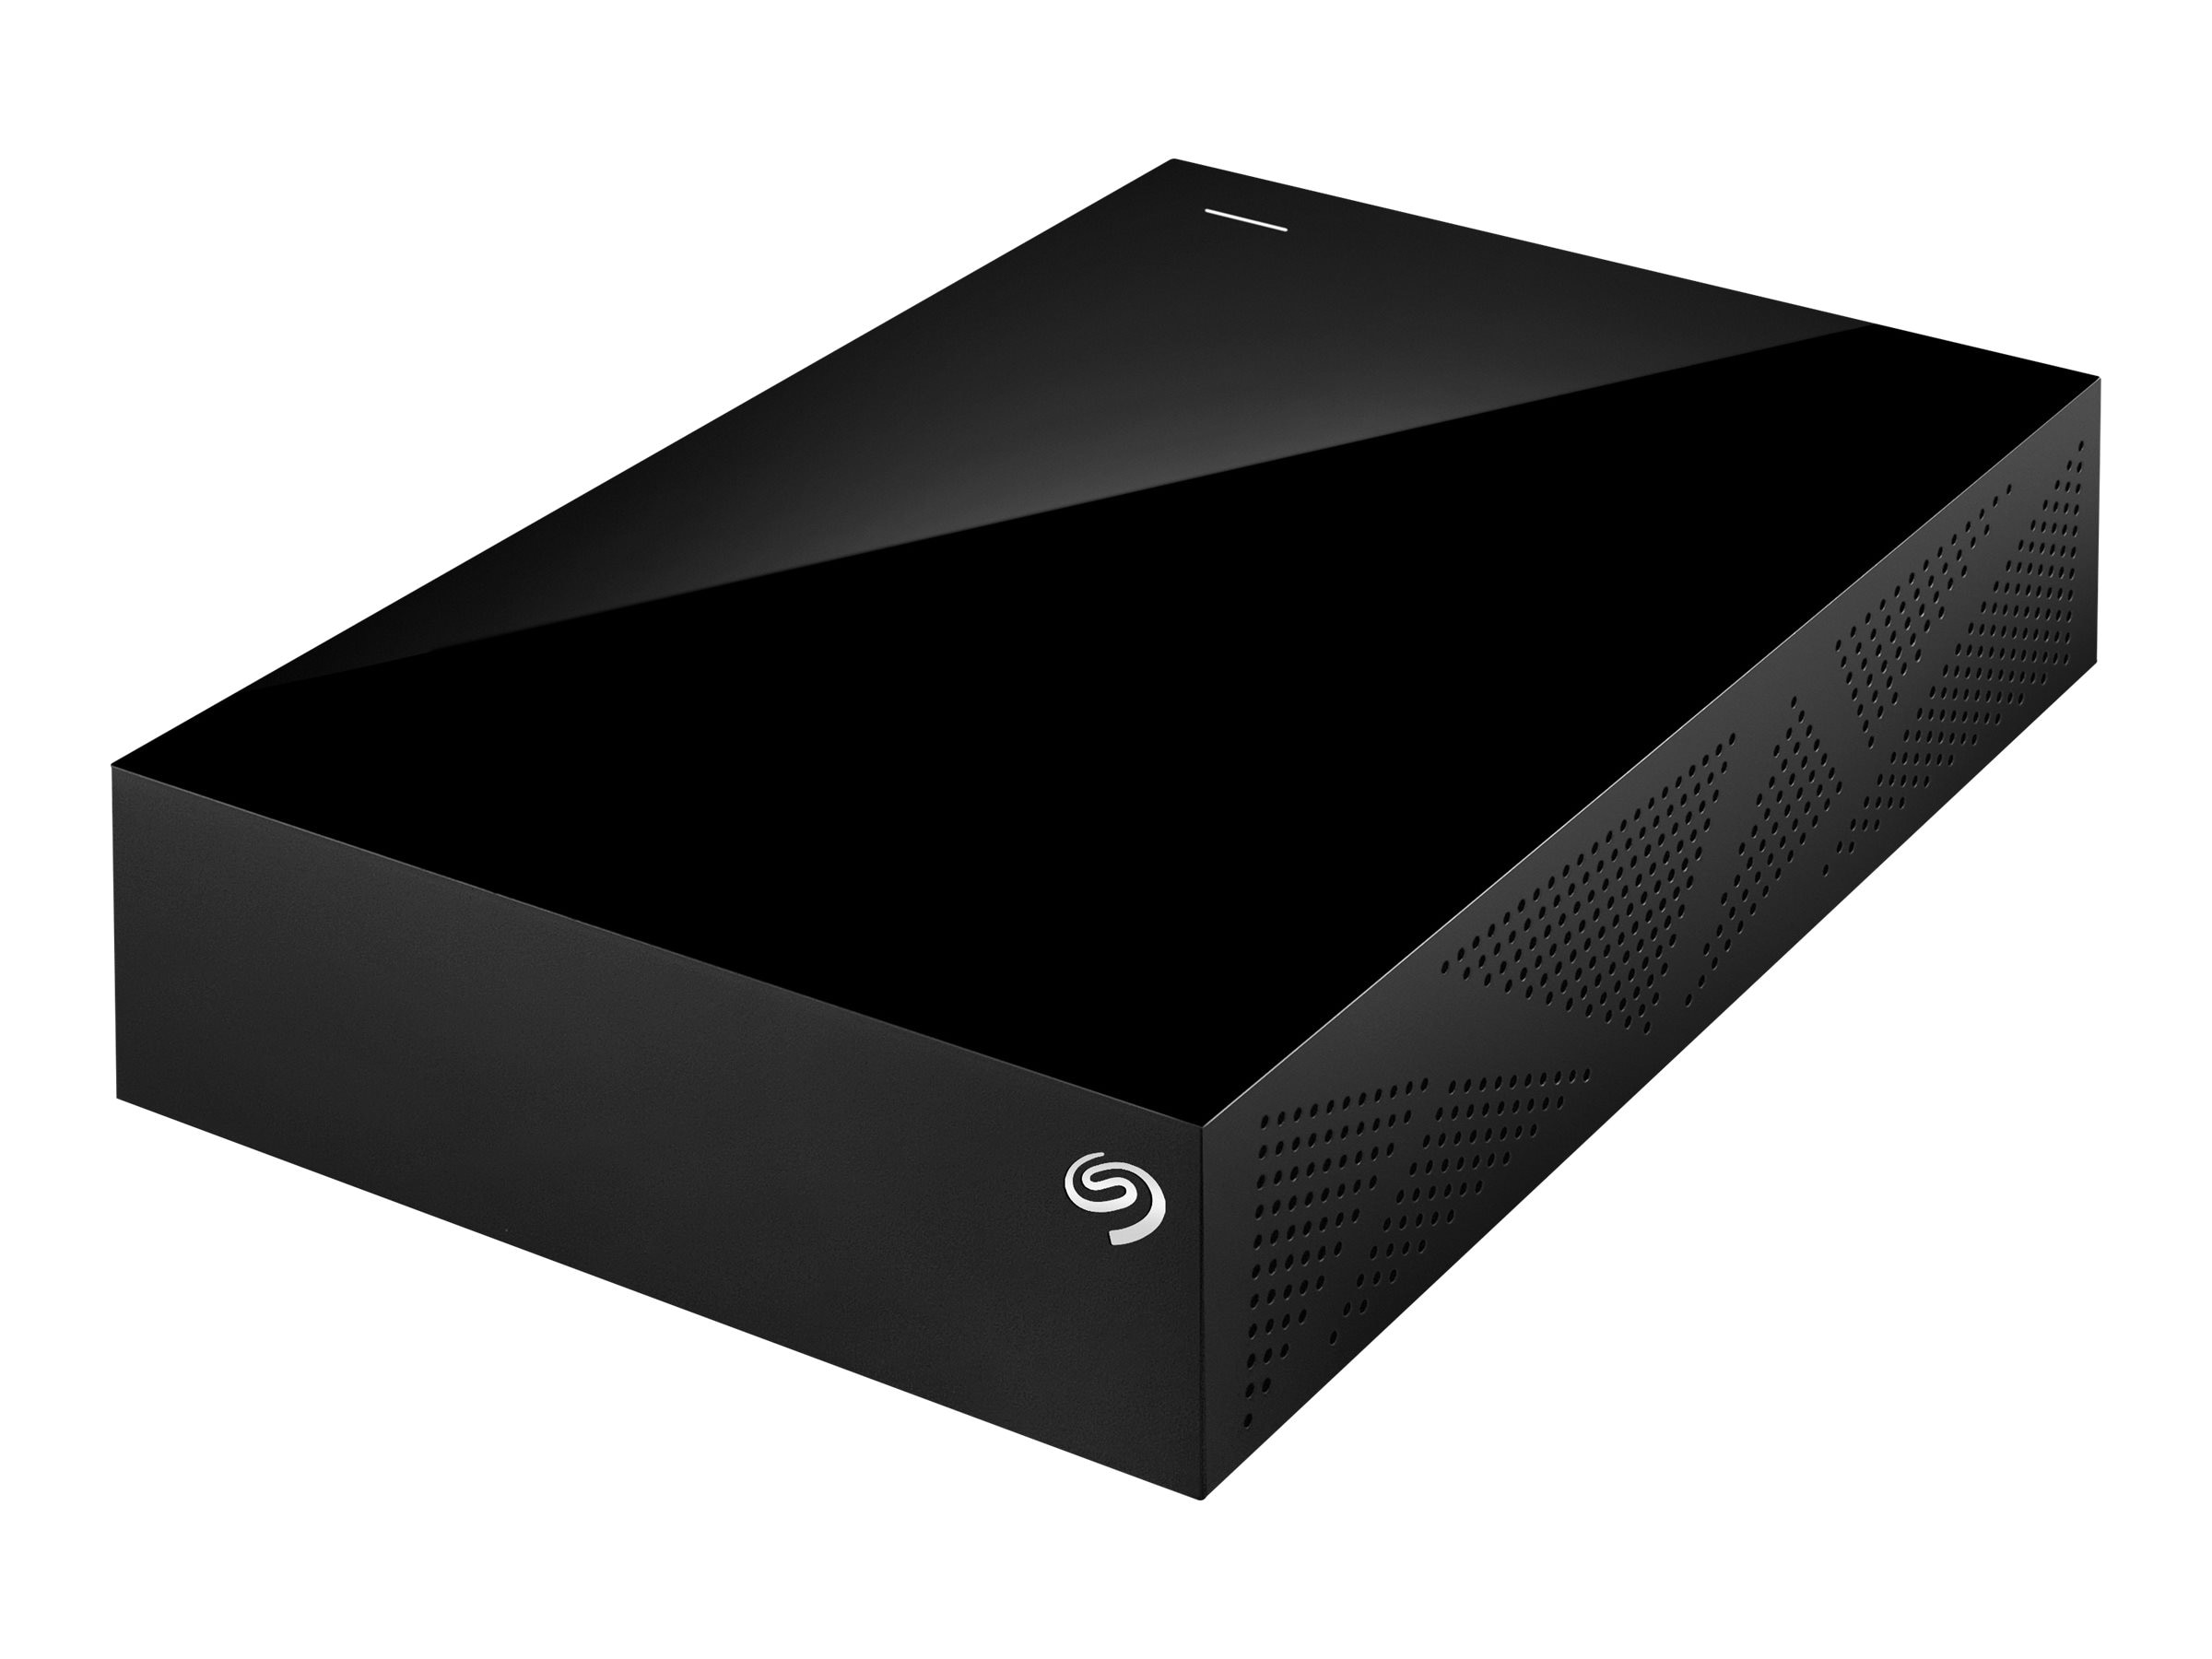 Seagate 3TB Backup Plus USB 3.0 3.5 Desktop Hard Drive - Tuxedo Black, STDT3000100, 16654746, Hard Drives - External